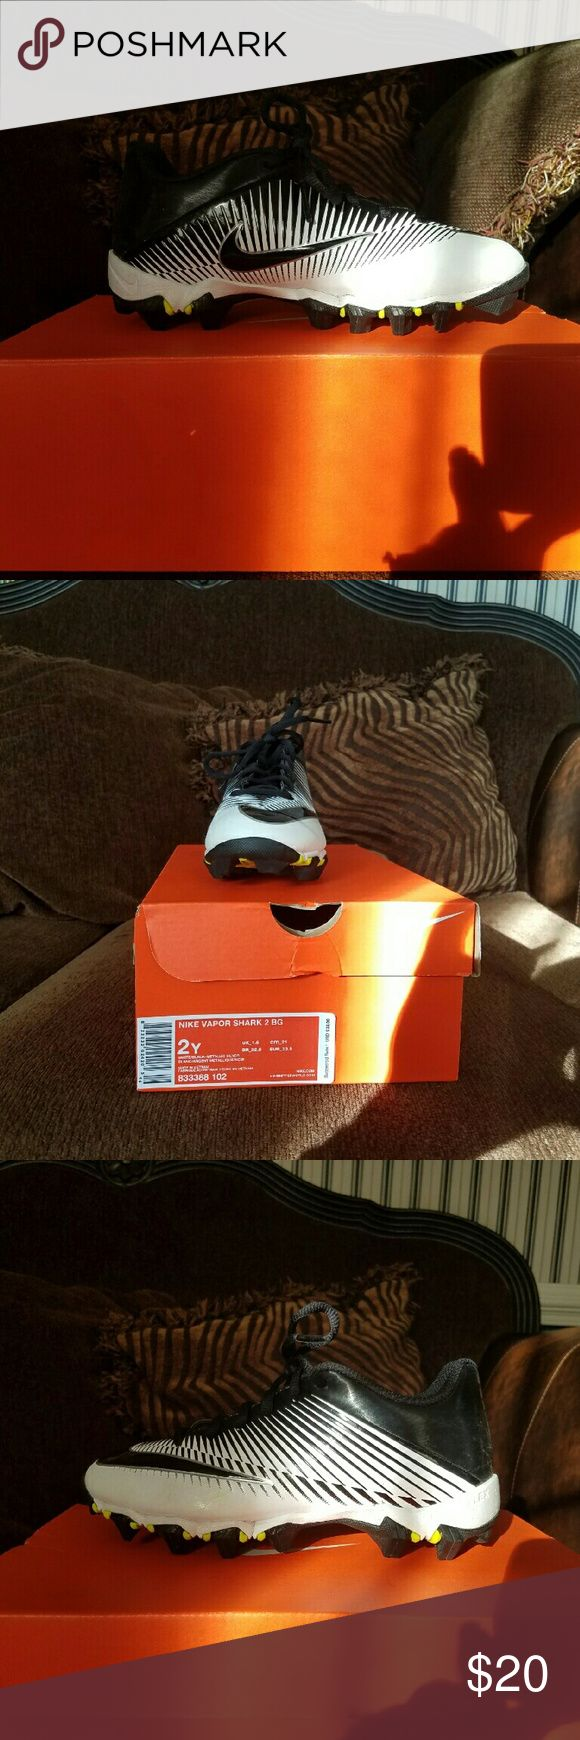 Boys Youth Size 2 Nike Cleats Black, white, and yellow.  Only worn twice and decided not to play football. Nike Shoes